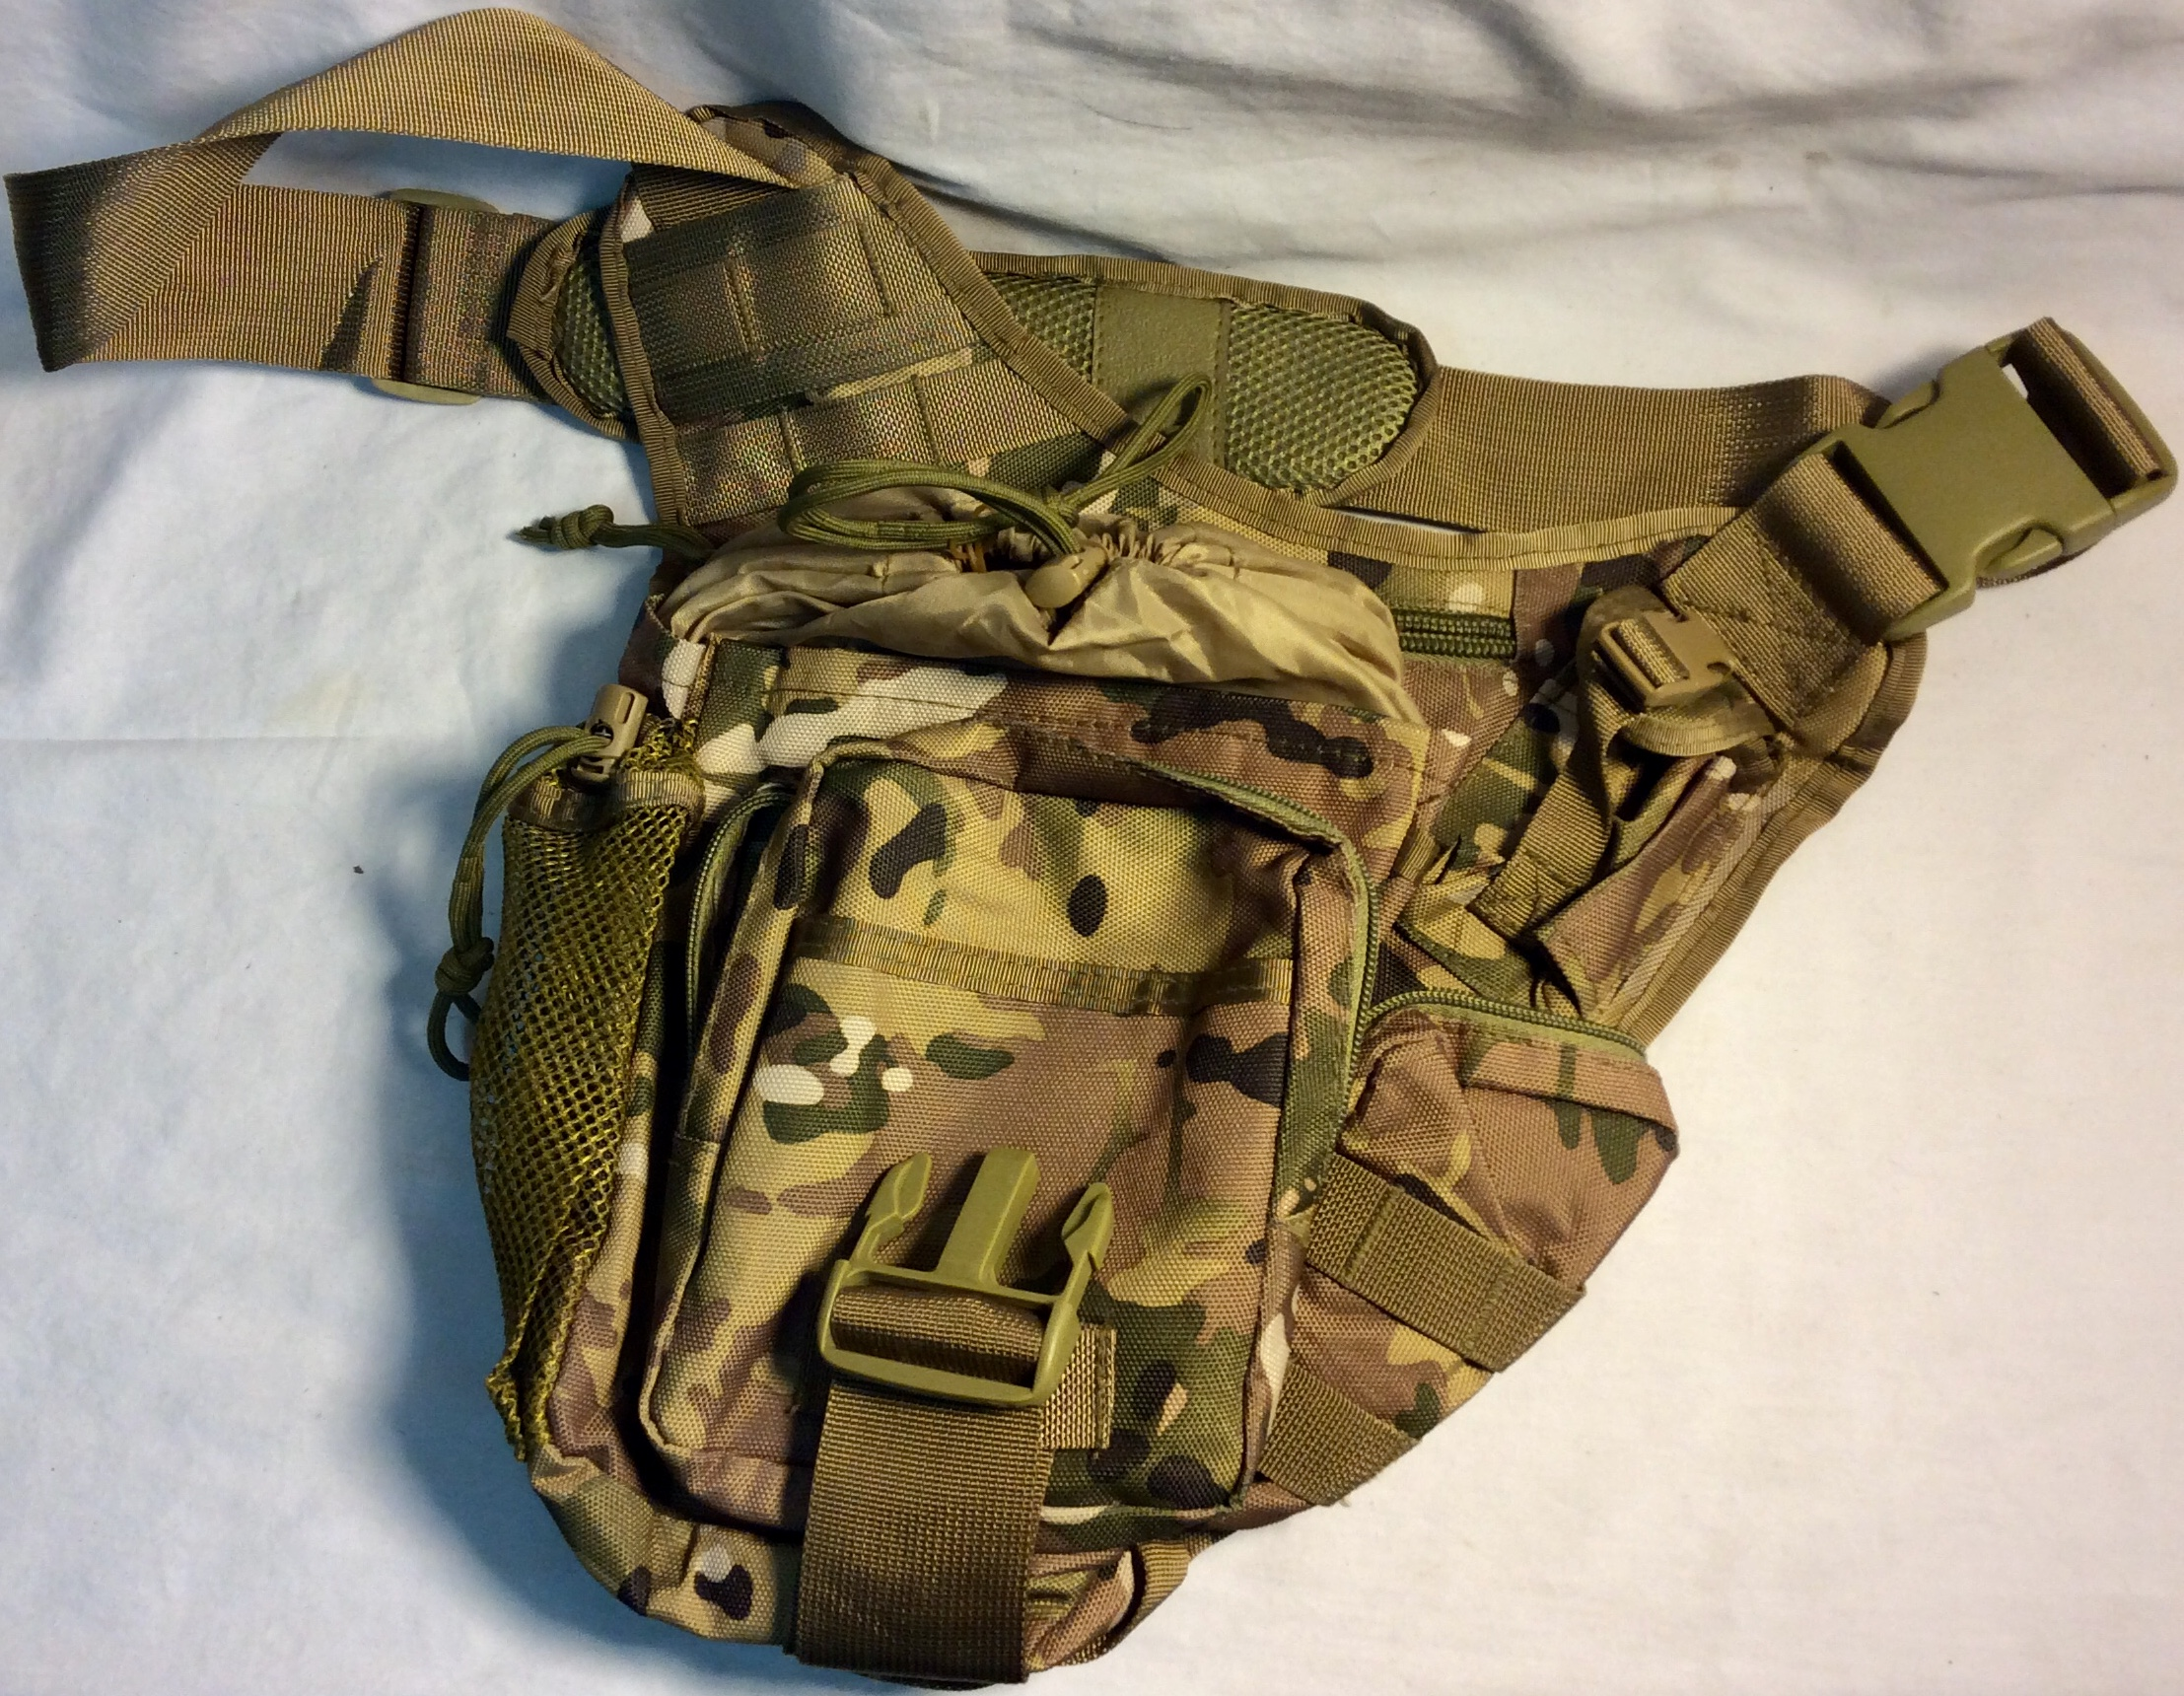 Military shoulder bag with classic camo